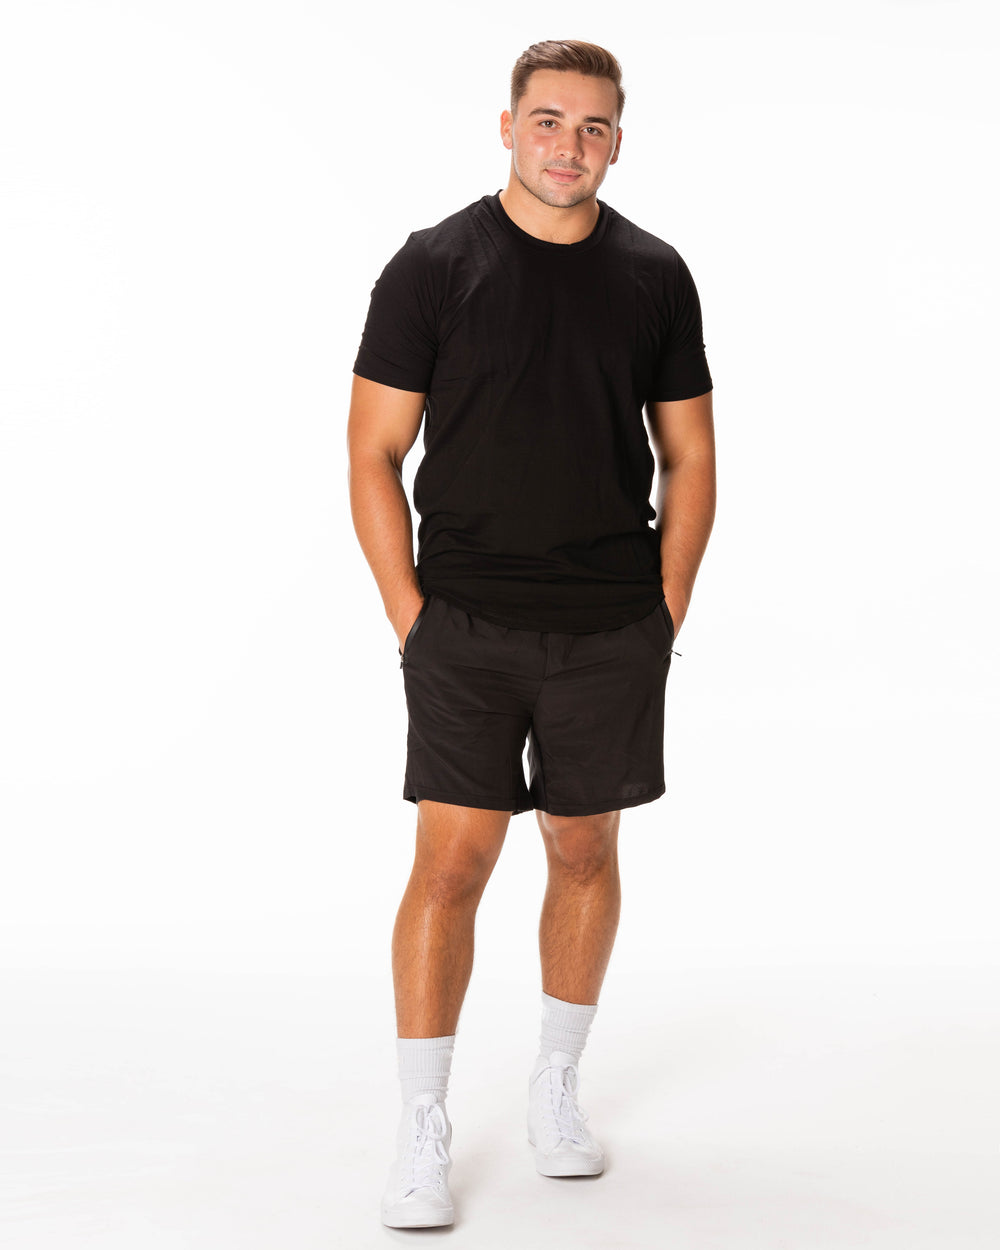 All Day Shorts Mens - Black